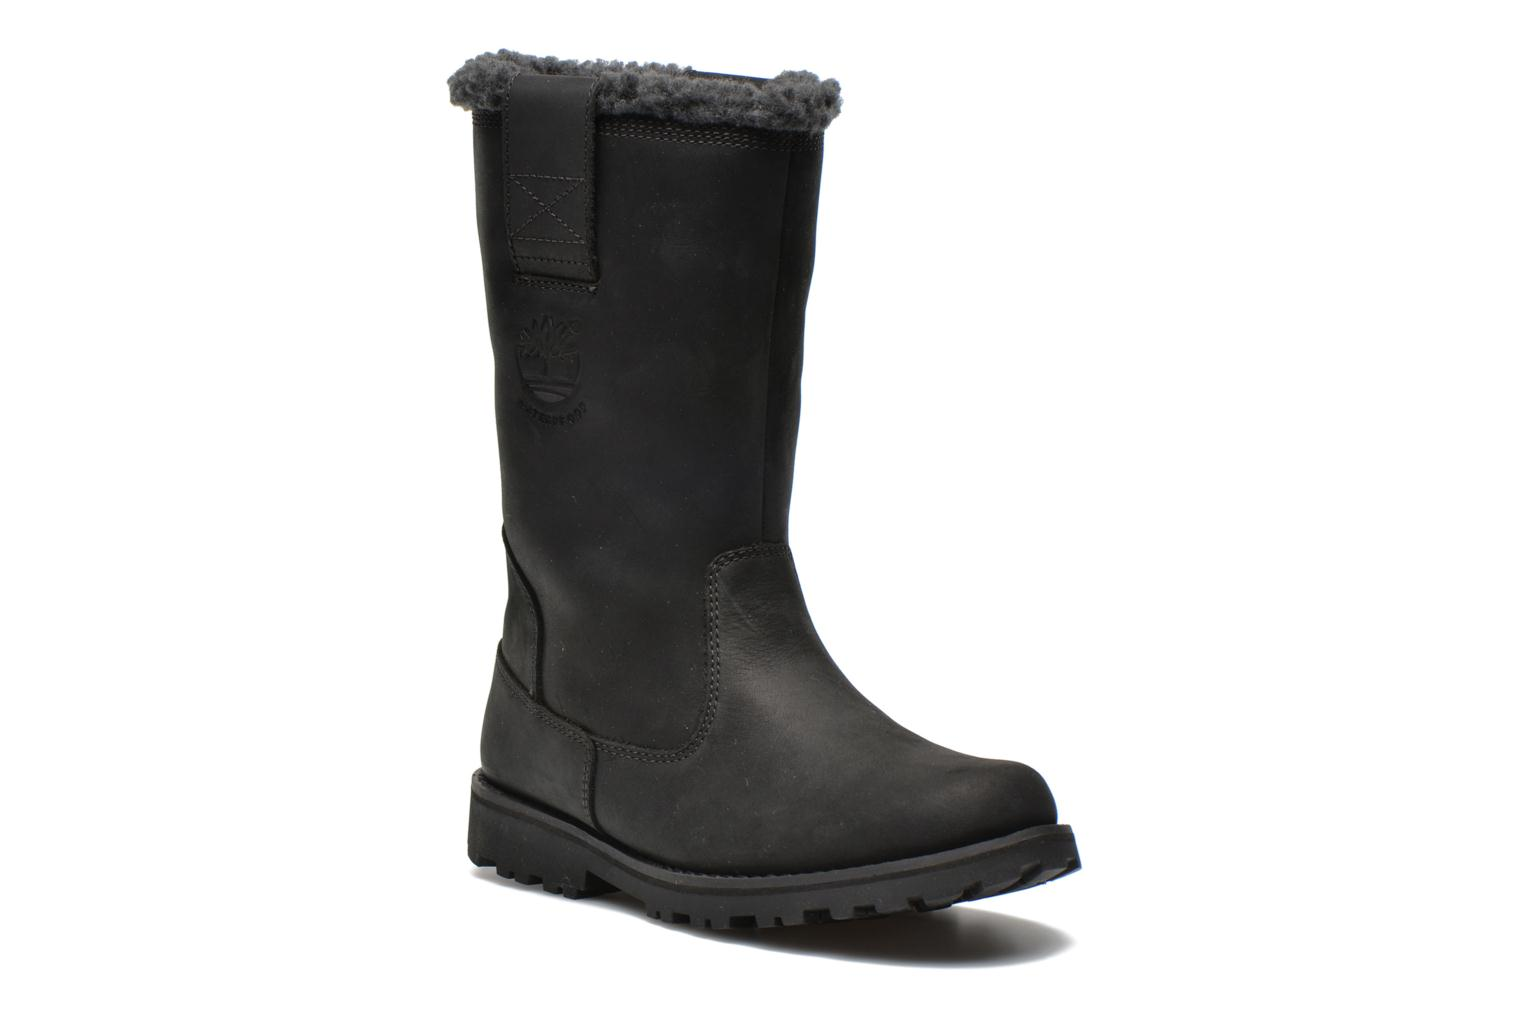 Bottines et boots Timberland 8 IN PULL ON WP BOOT Noir vue détail/paire